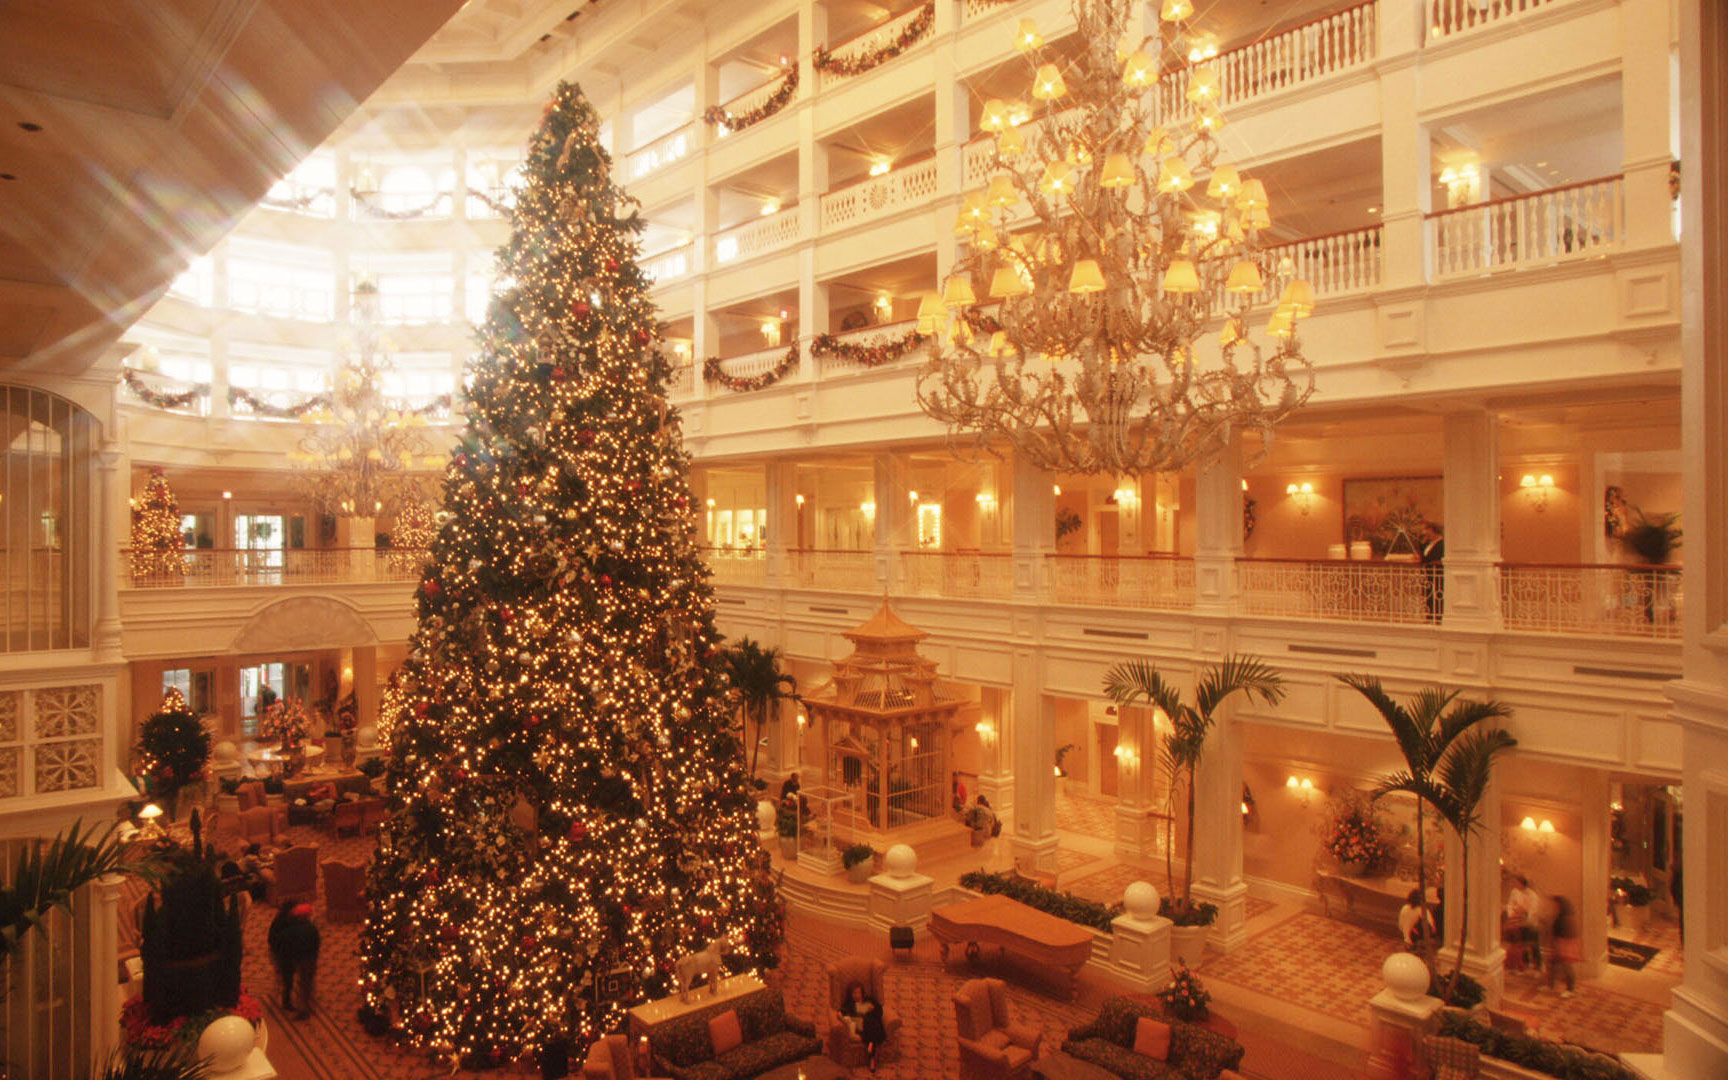 Disney Christmas Travel Tips: Tour Disney Hotel Lobbies